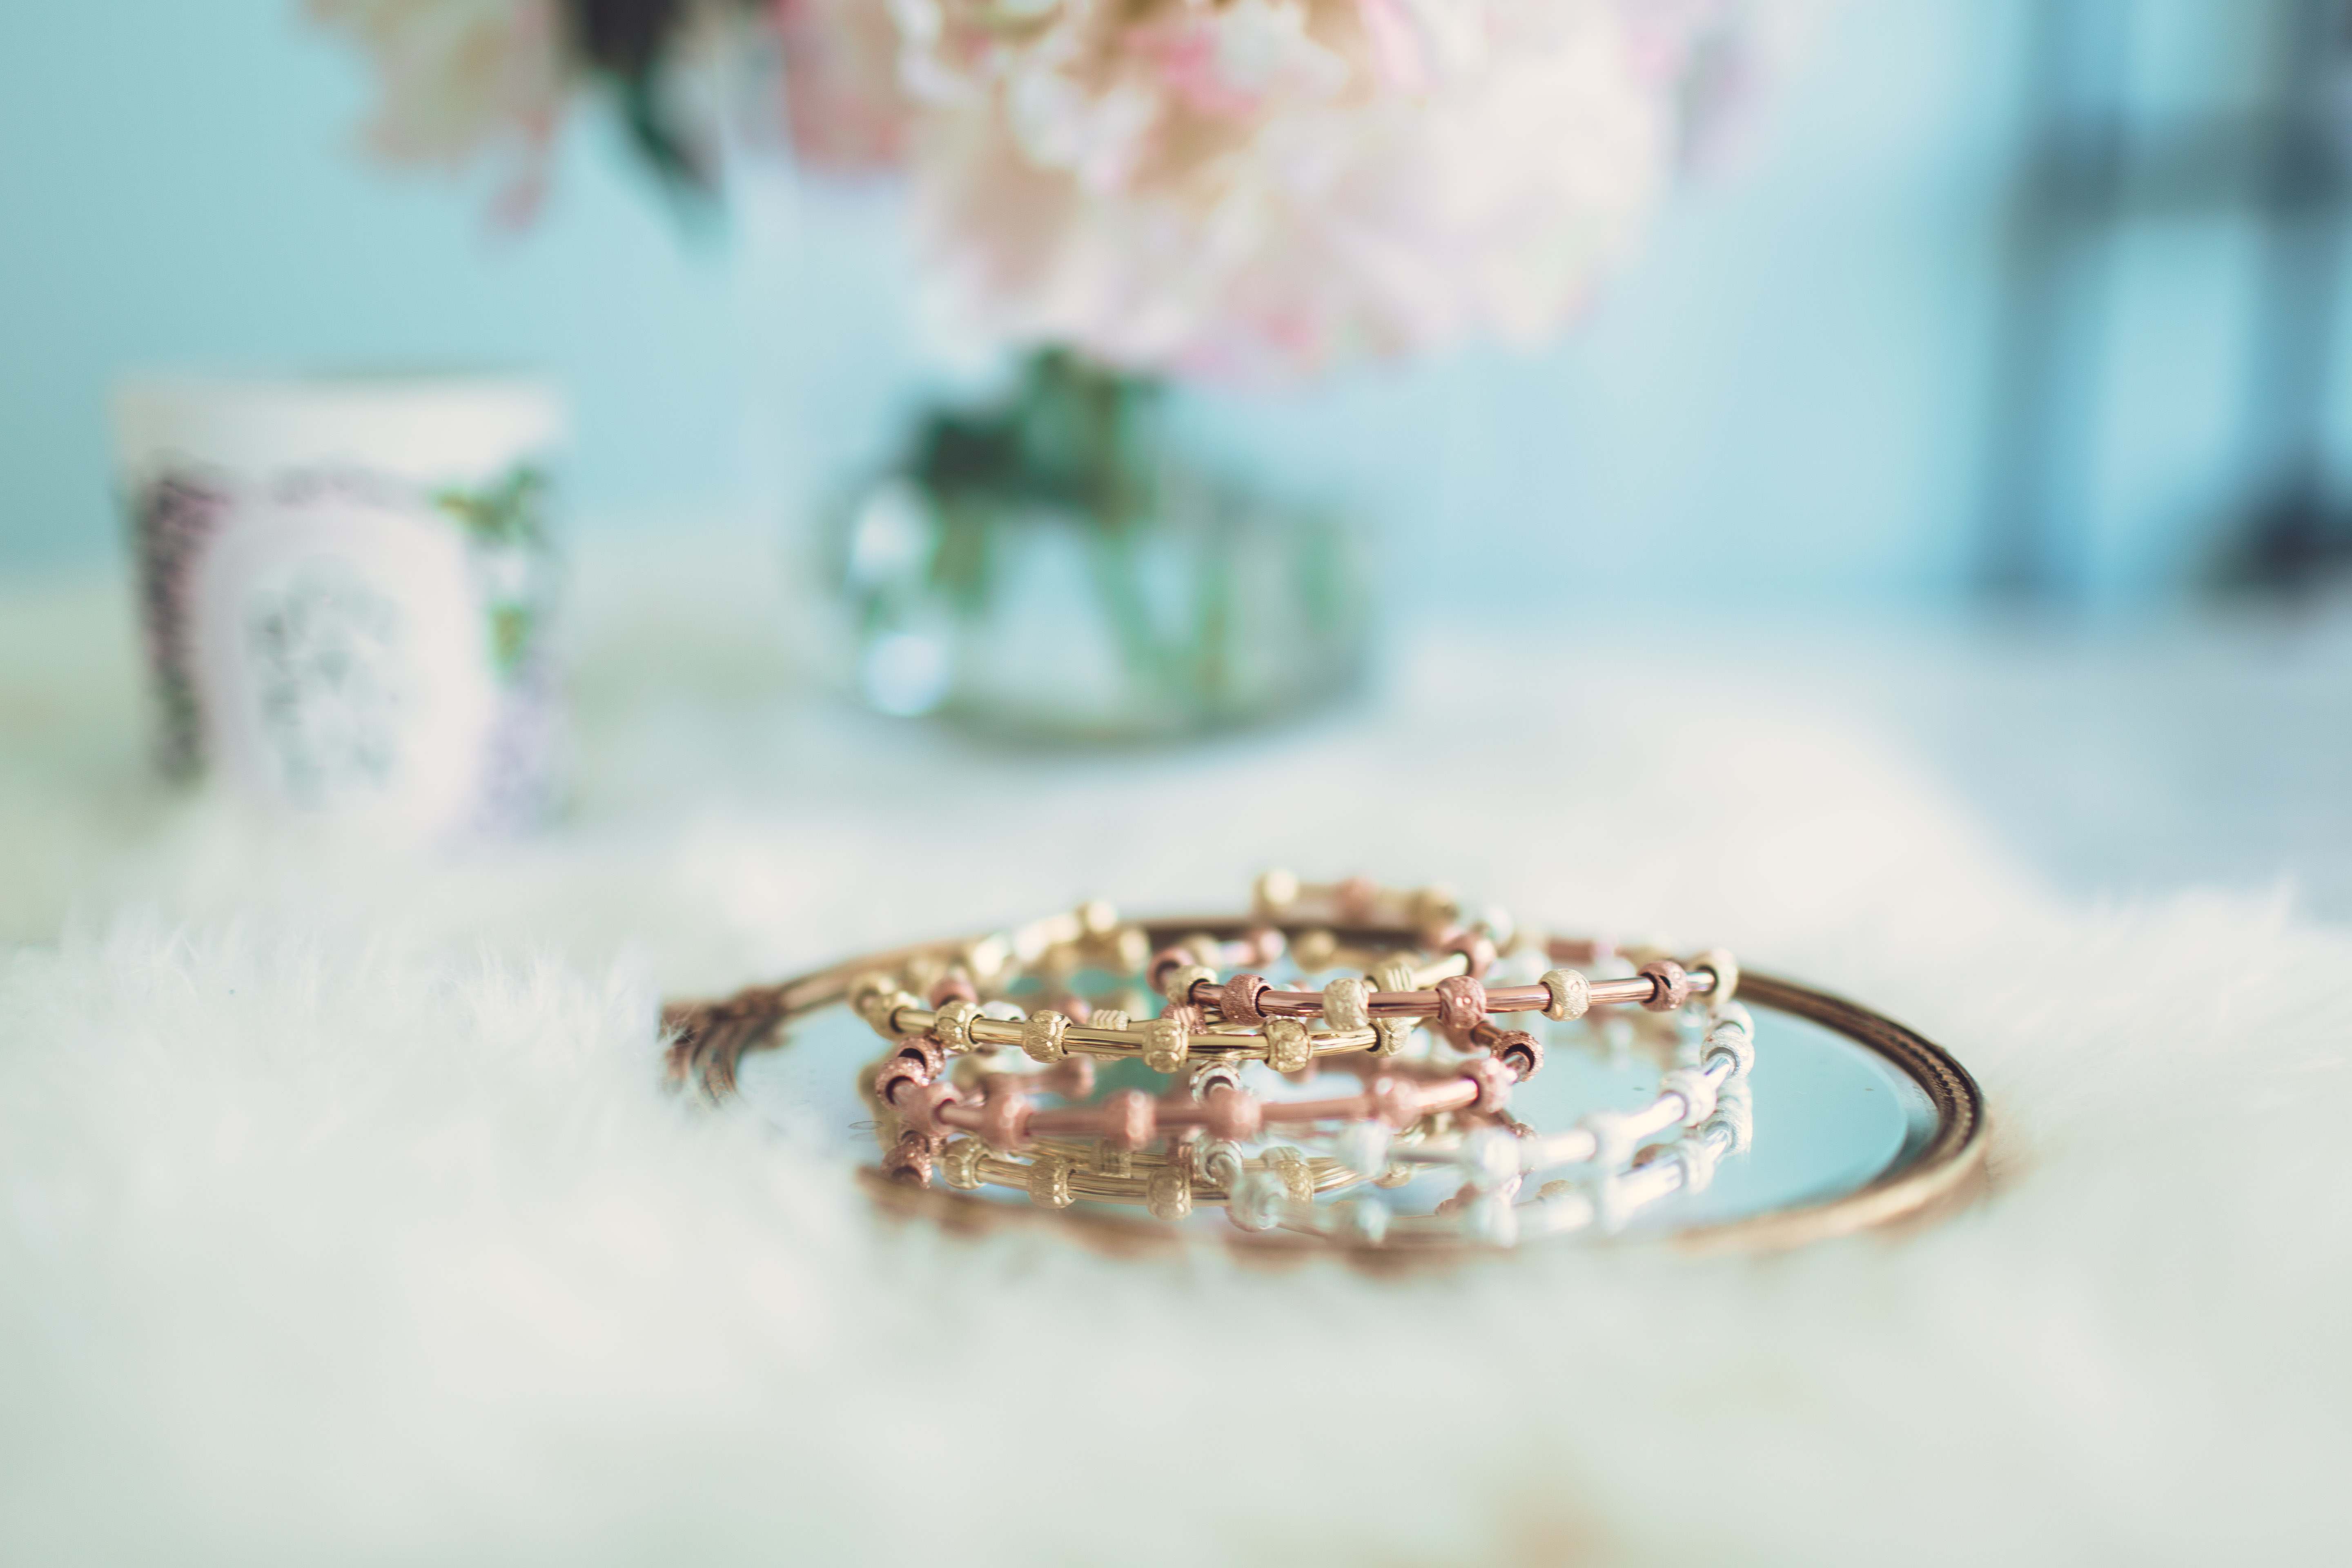 Count Me Healthy Bracelets by Chelsea Charles on The Skinny Confidential